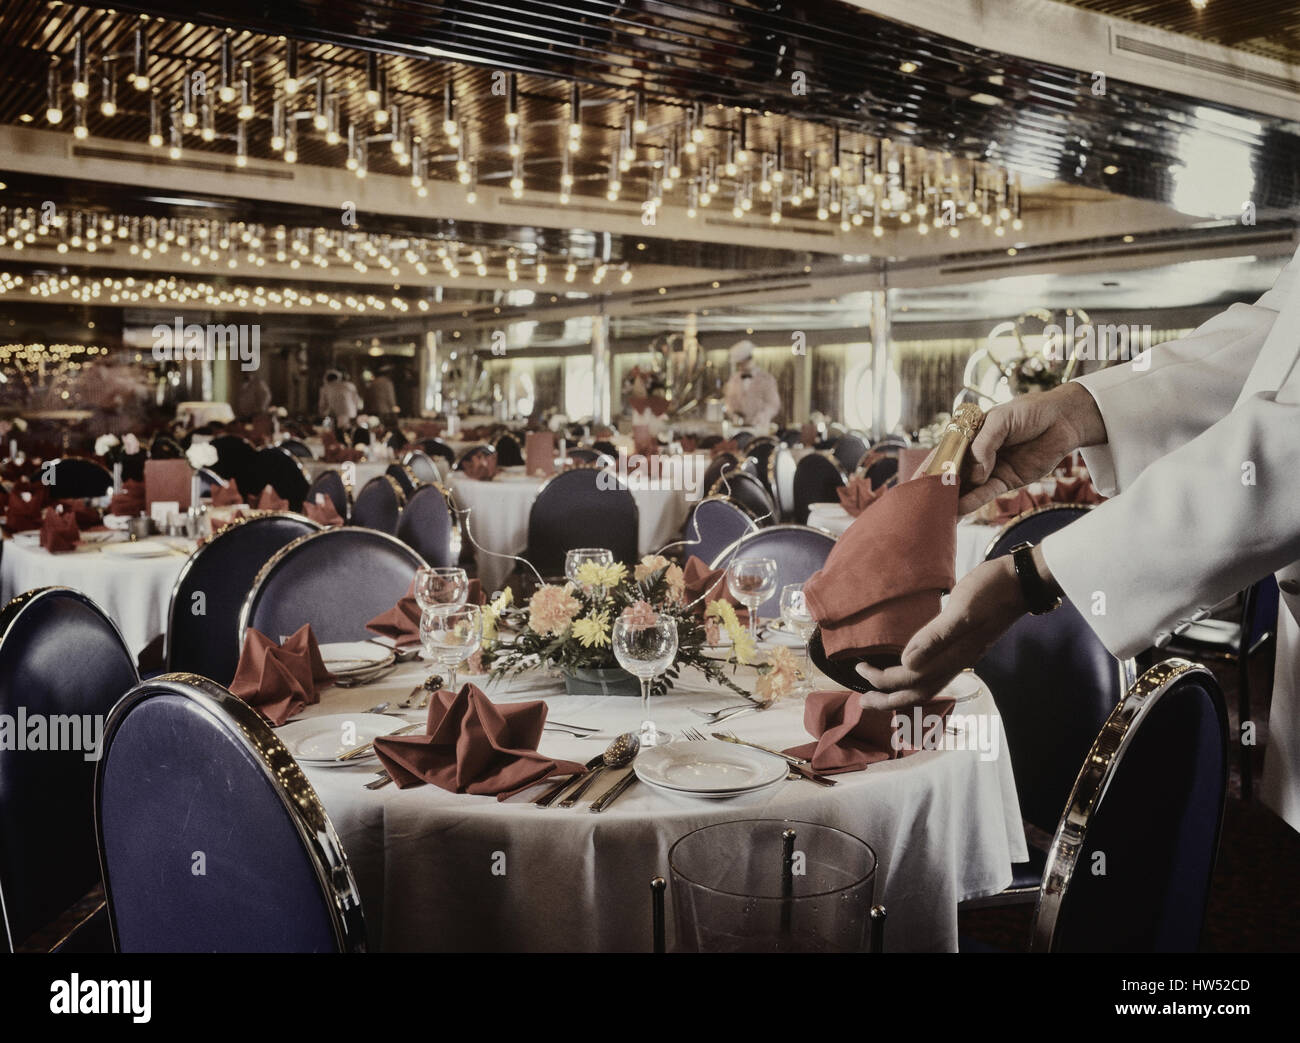 Cruise ship dining room prepared for evening meal. Stock Photo